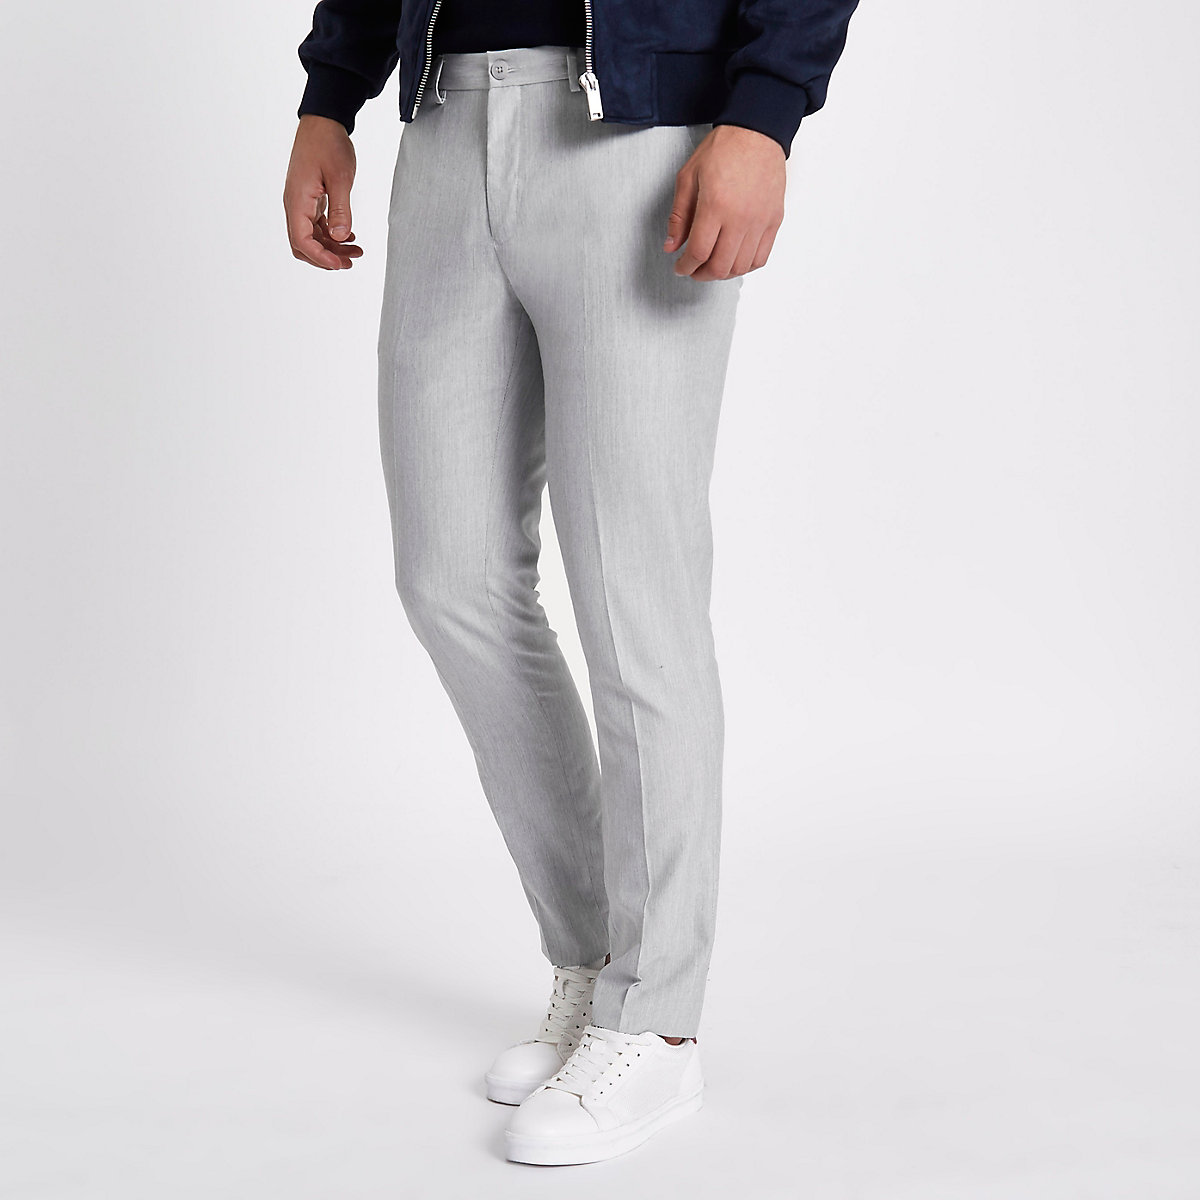 Light grey skinny fit smart trousers